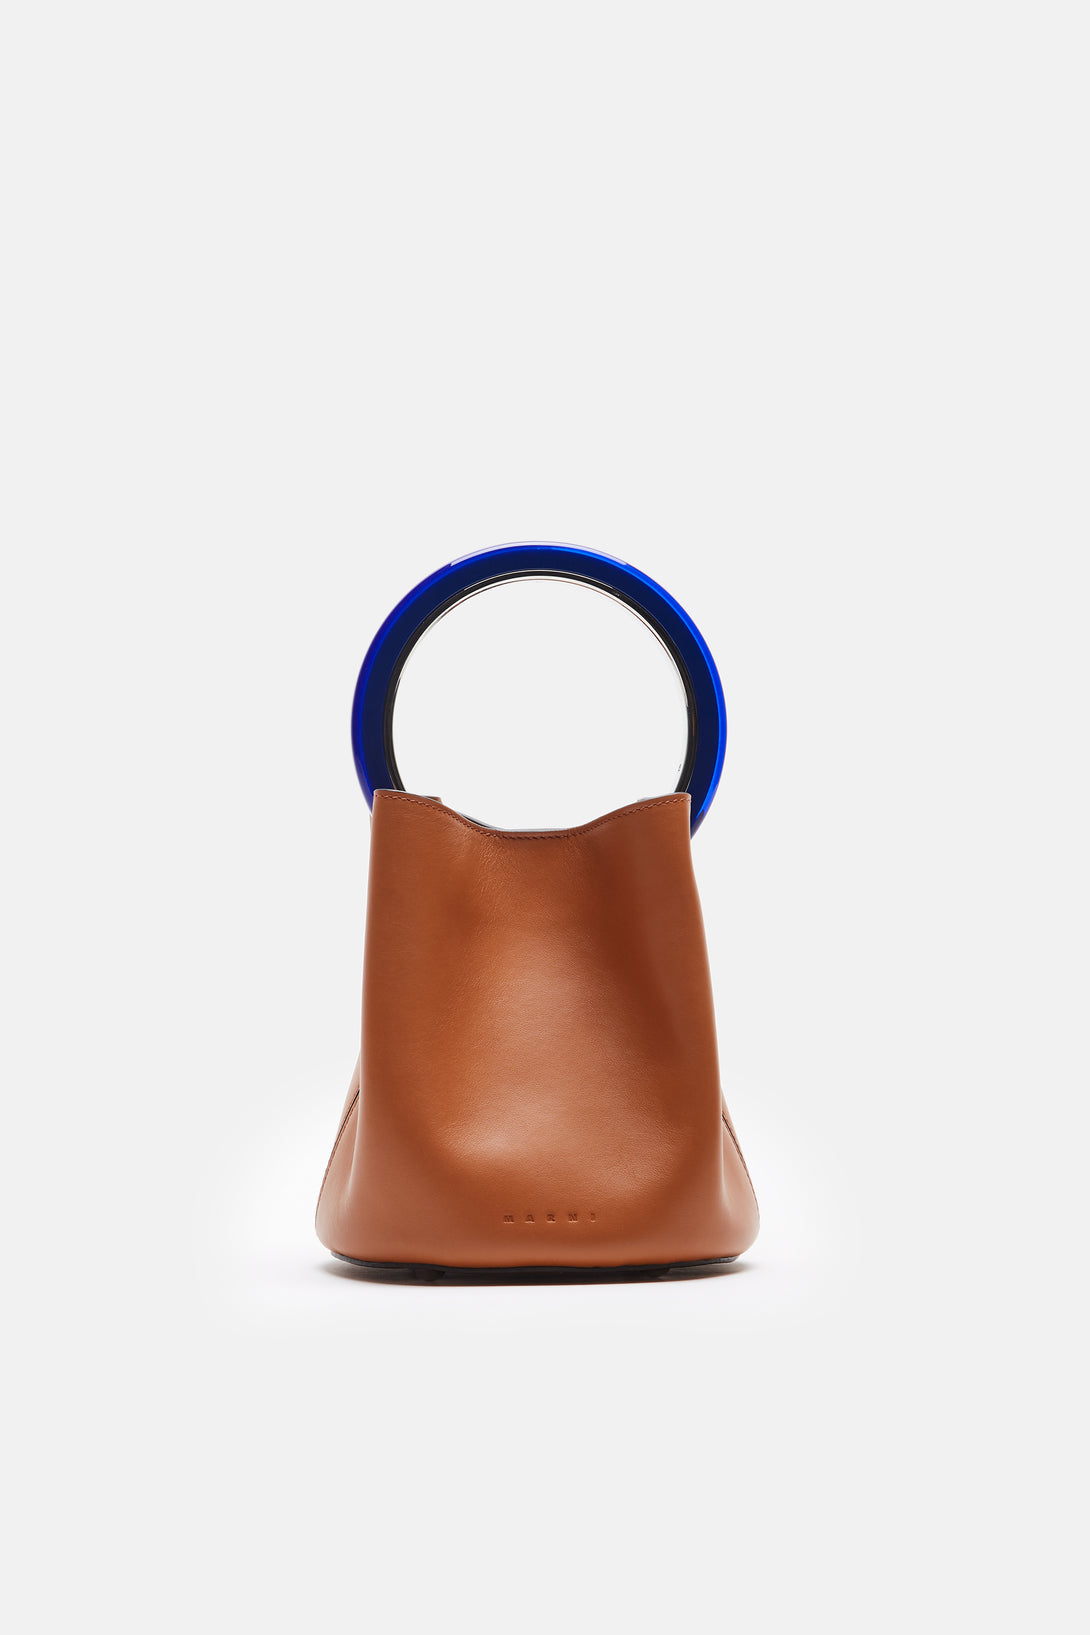 Pannier Mini Bucket Bag - Cinnamon